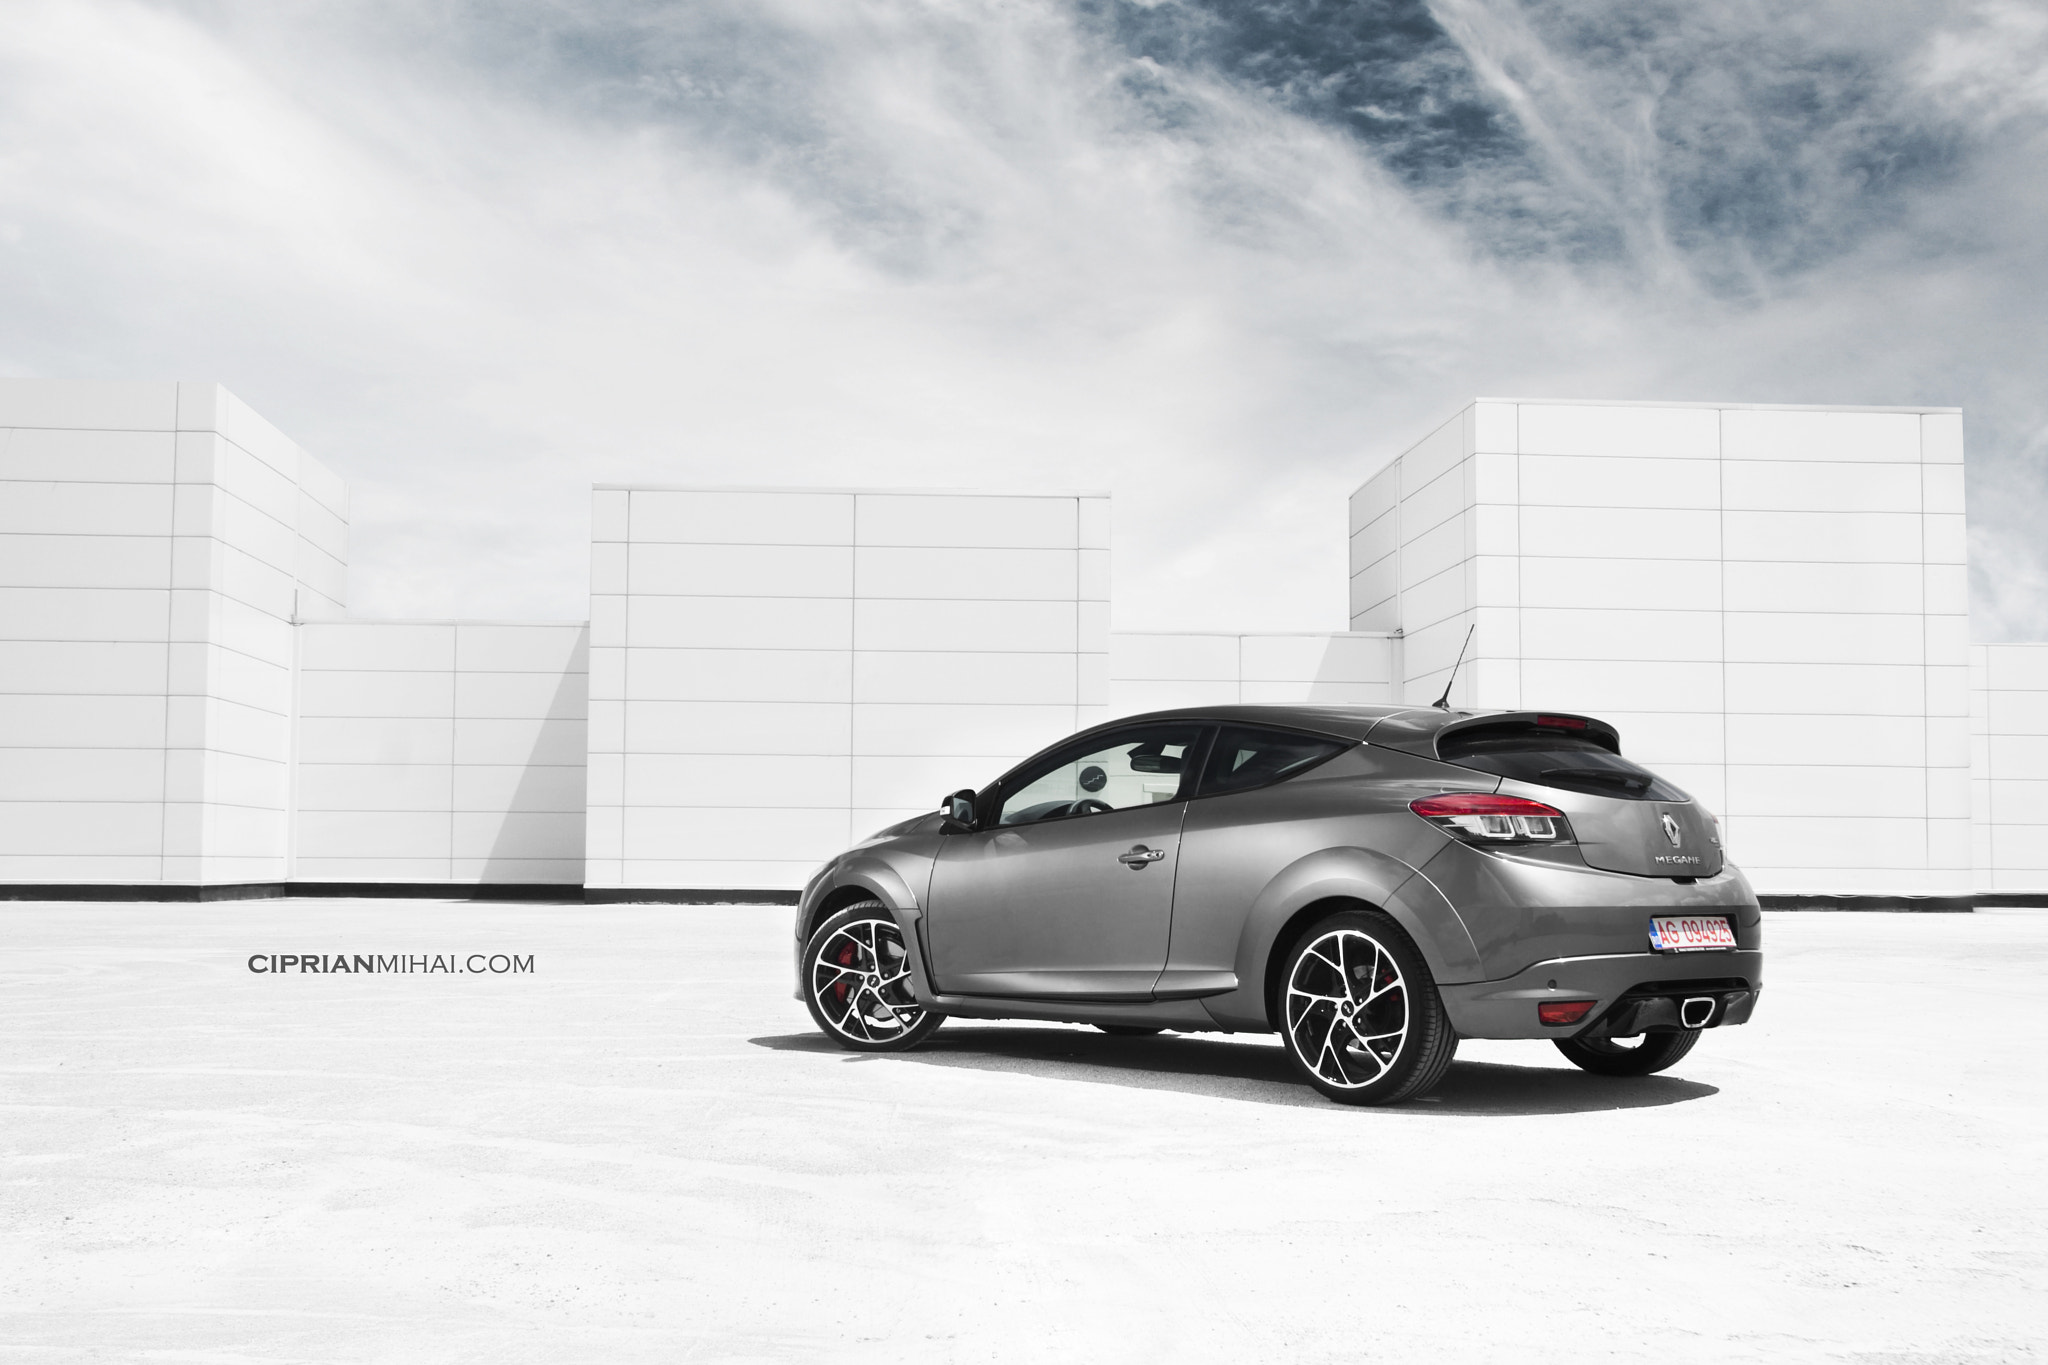 Photograph Renault Megane RS by Ciprian Mihai on 500px